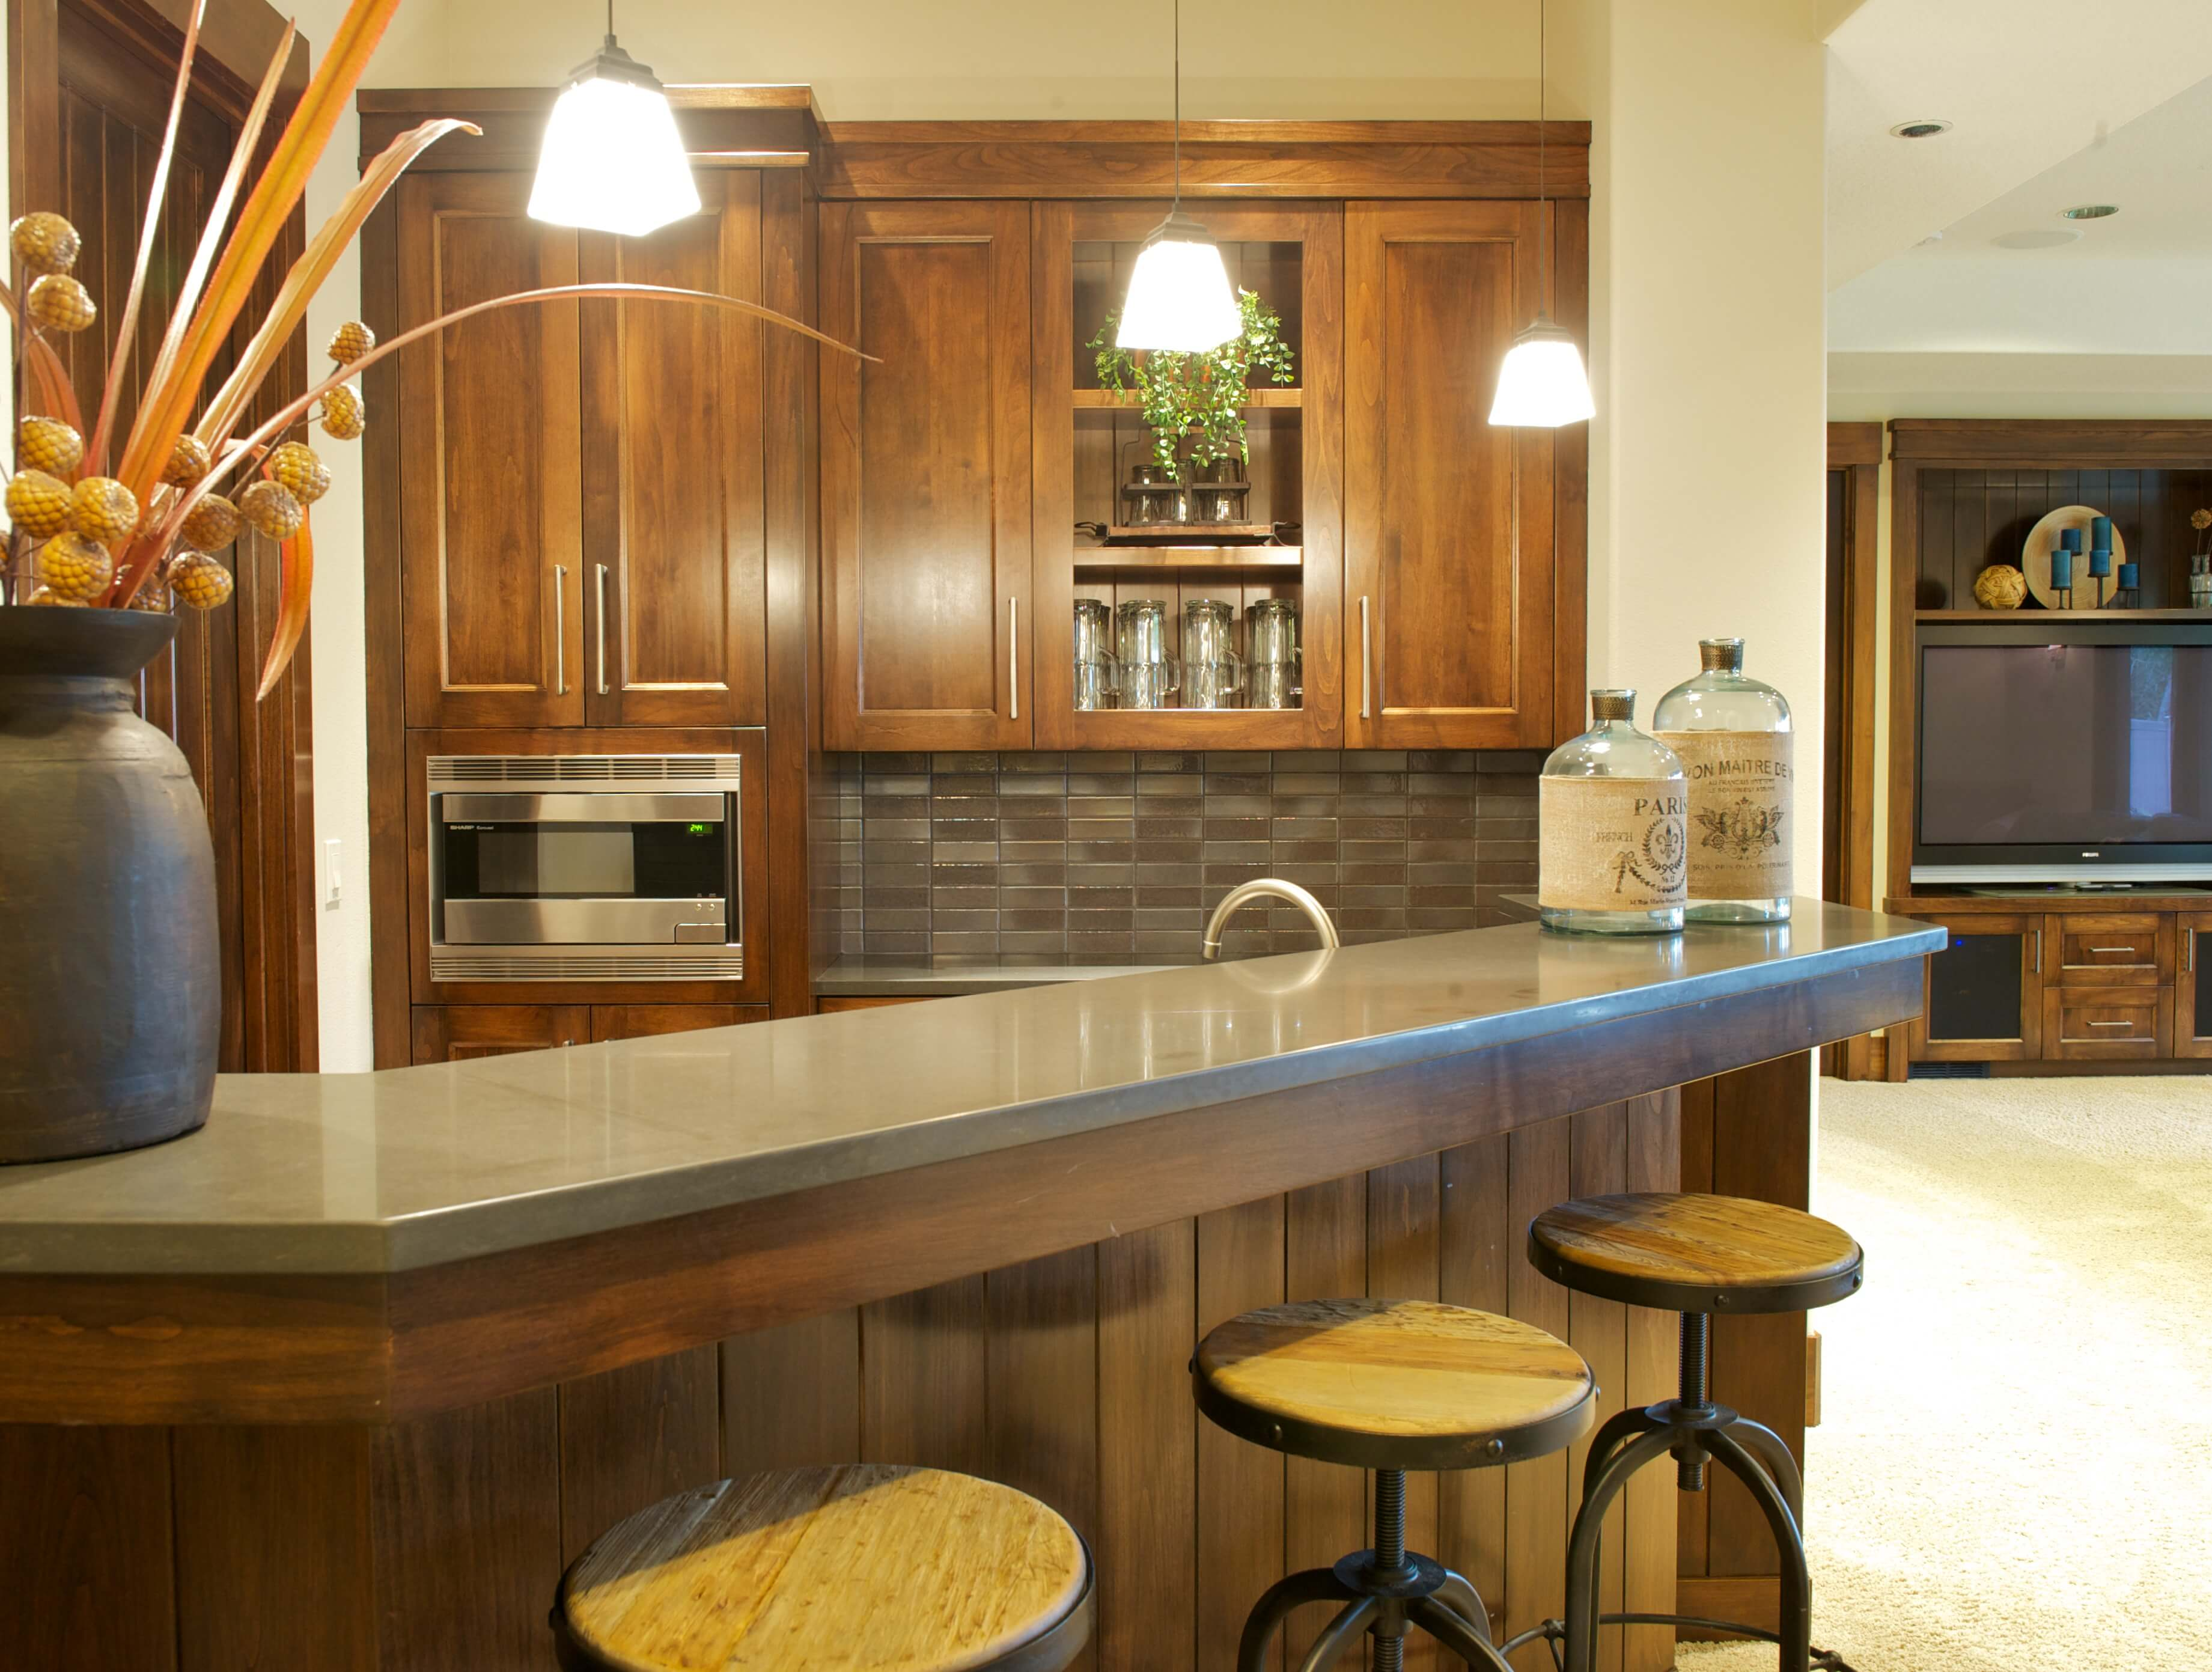 Unique bar area separate from kitchen features matching wood and metal bar stools and grey tile backsplash with matching countertop and exposed glassware storage.